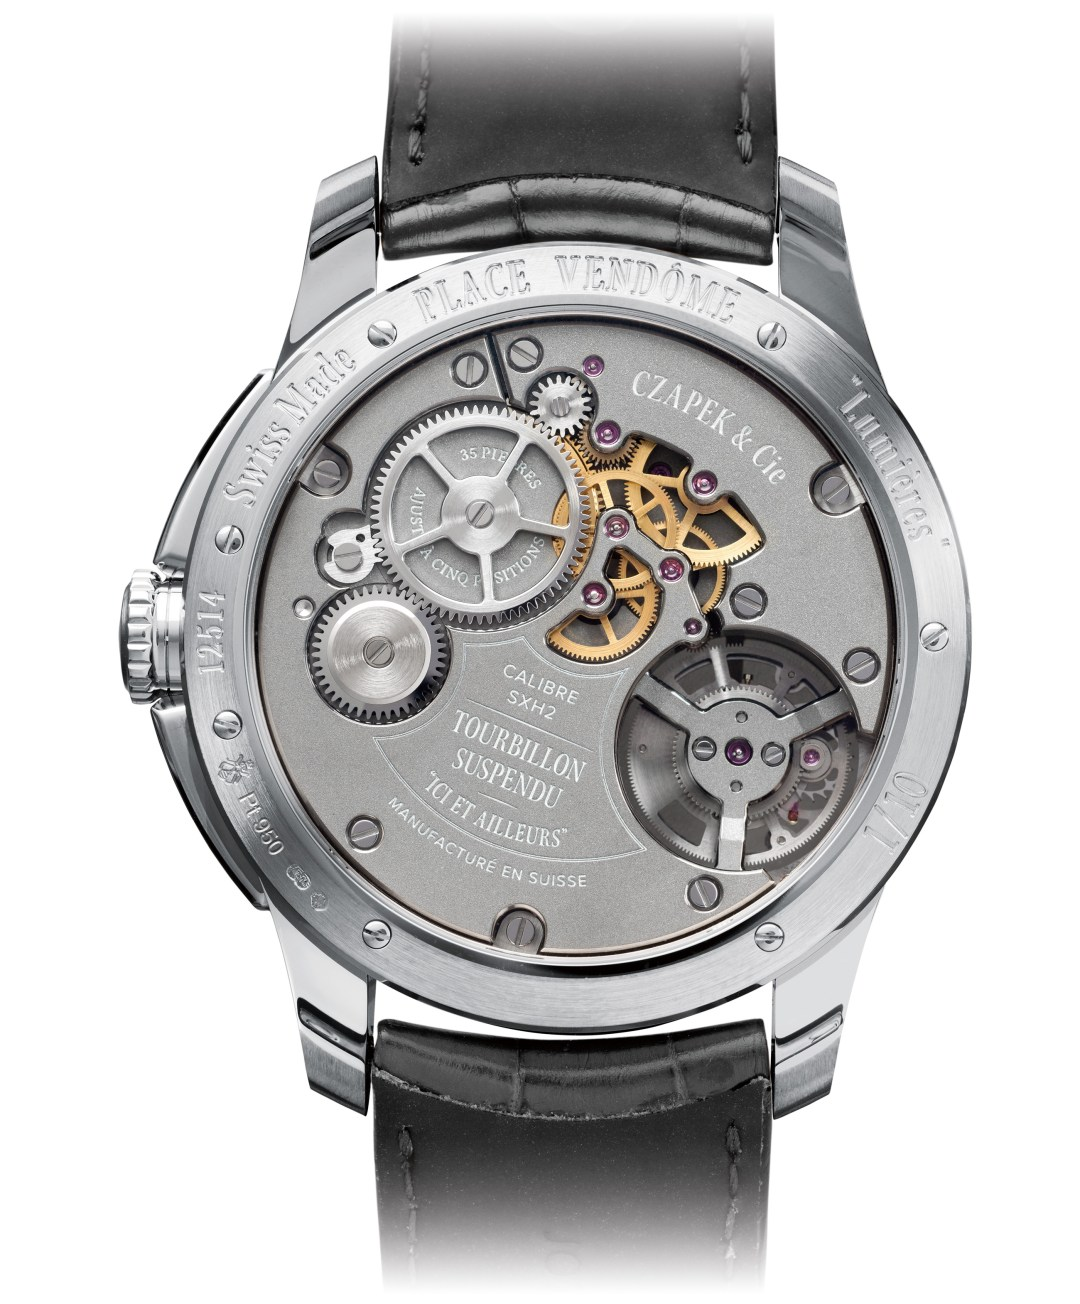 Place-Vendome_Tourbillon_Suspendu_Platinum_Caseback_ISO copy.jpg